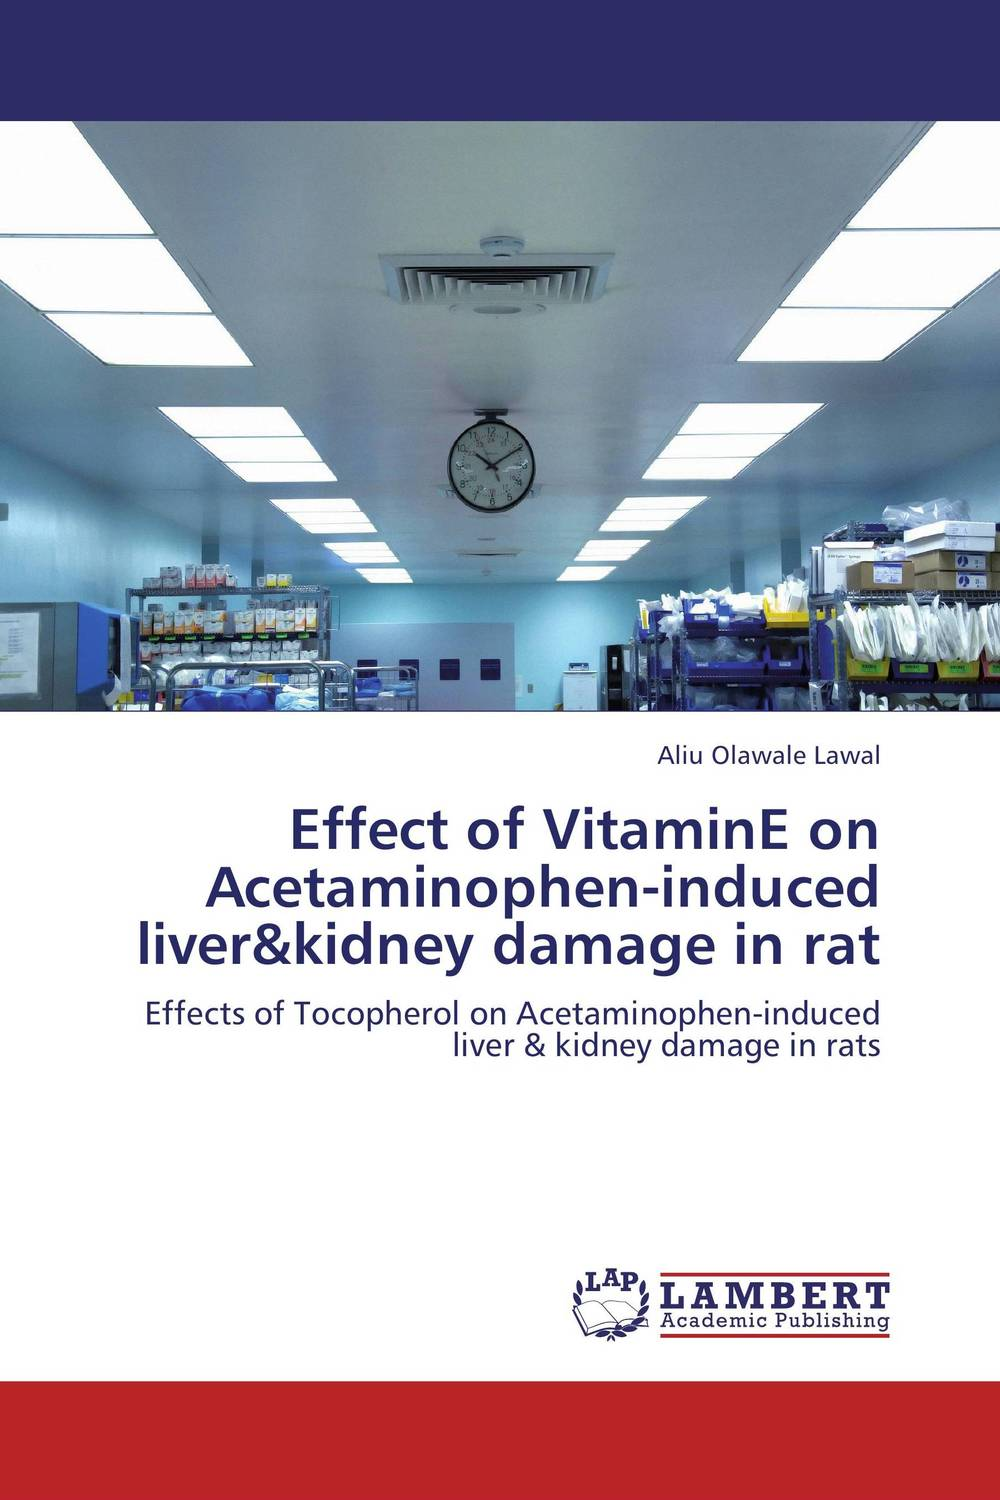 Effect of VitaminE on Acetaminophen-induced liver&kidney damage in rat 2 bottles dodder seed pe nourish liver and kidney treatment of jaundice enhancement for men a longevity herb free shipping